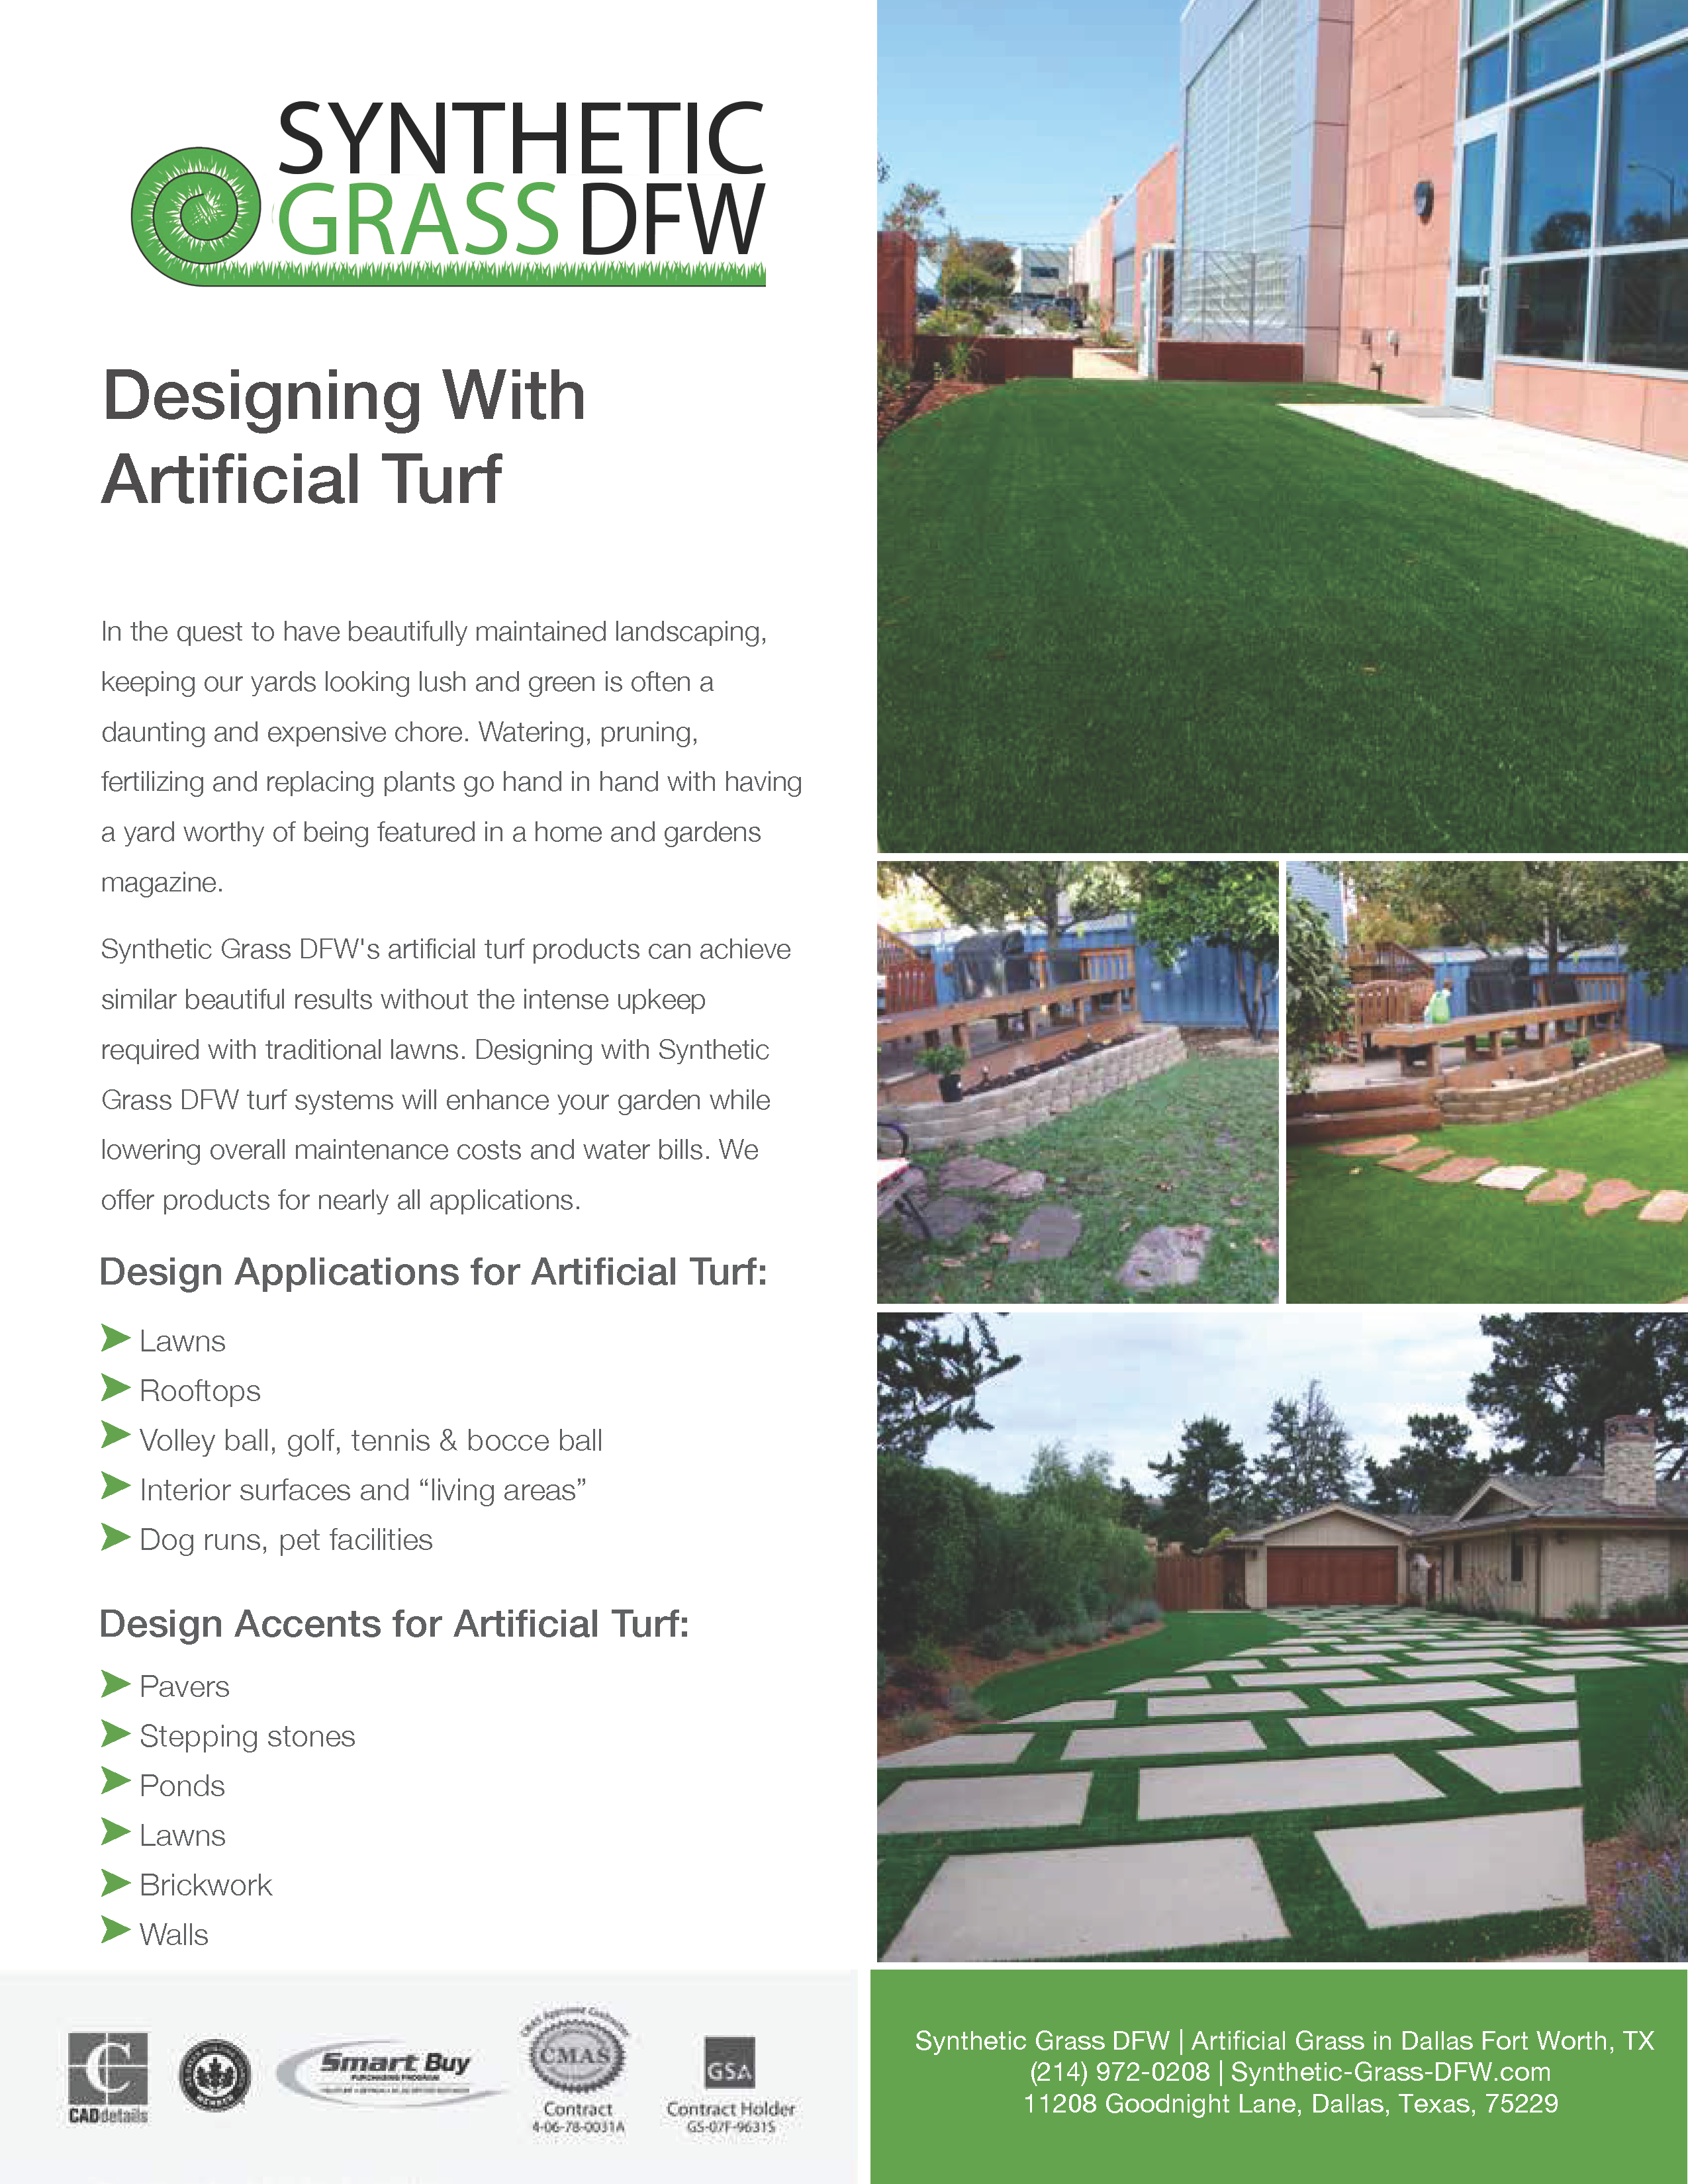 Designing with Artificial Grass